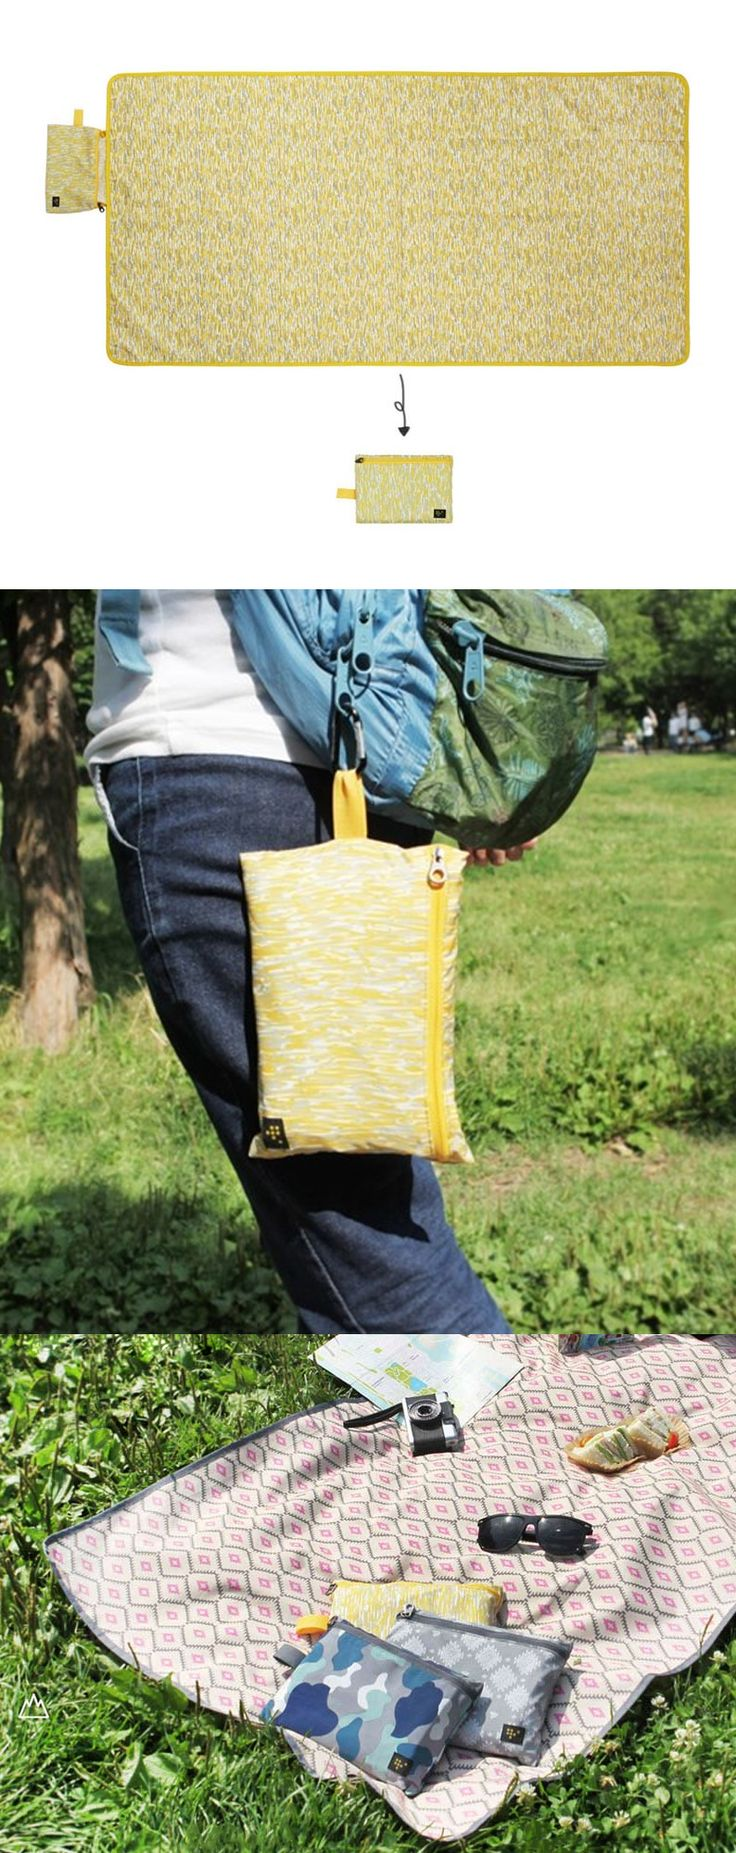 What's on our list of must have picnic supplies? The Weekade Foldable Mat! This beautifully patterned picnic mat unfolds to a large size and also becomes super compact when folded into its pocket! This versatile mat is dense, durable, and water resistant on both sides. When folded it even has a fabric loop so you can clip it onto a backpack or bag! It's always a good time for outdoor activities, so take this along when you go camping or to the beach, amusement parks, and picnics! Check it…